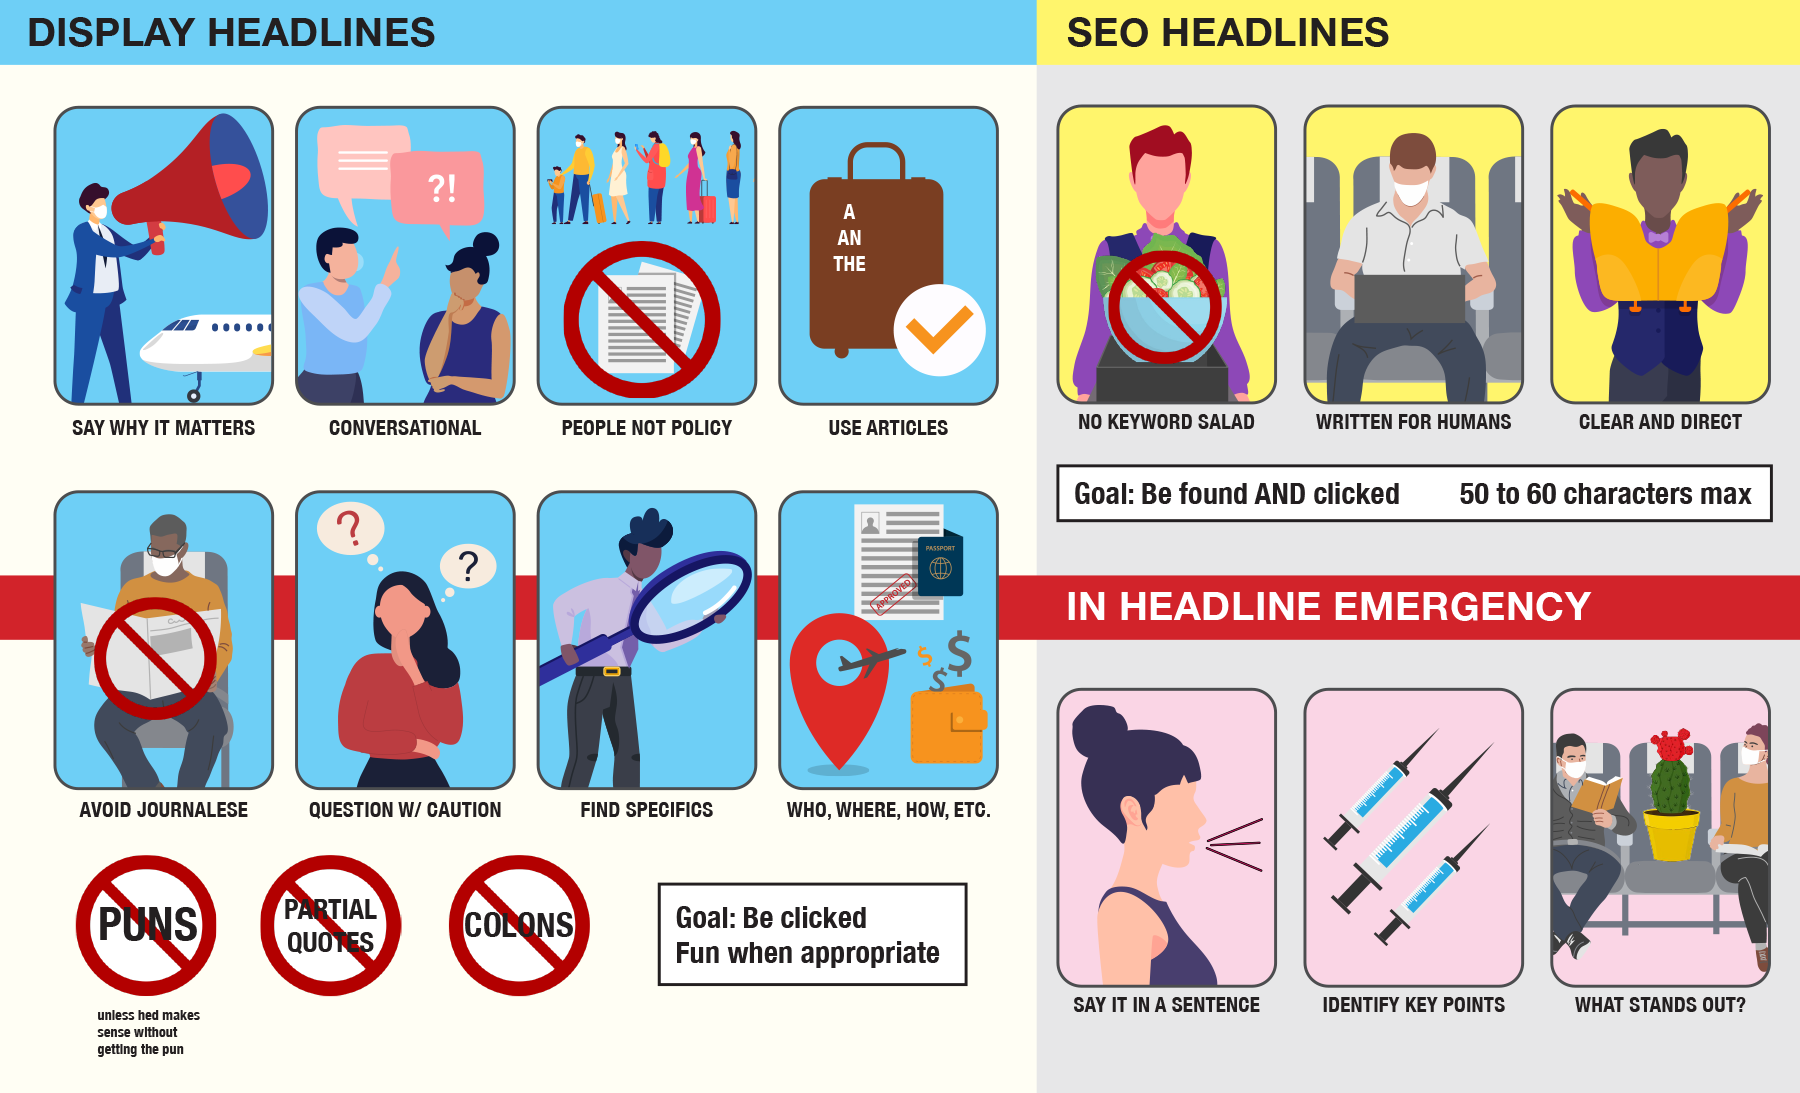 A handout made to look like an airplane safety card, with images that correspond to the advice in the story